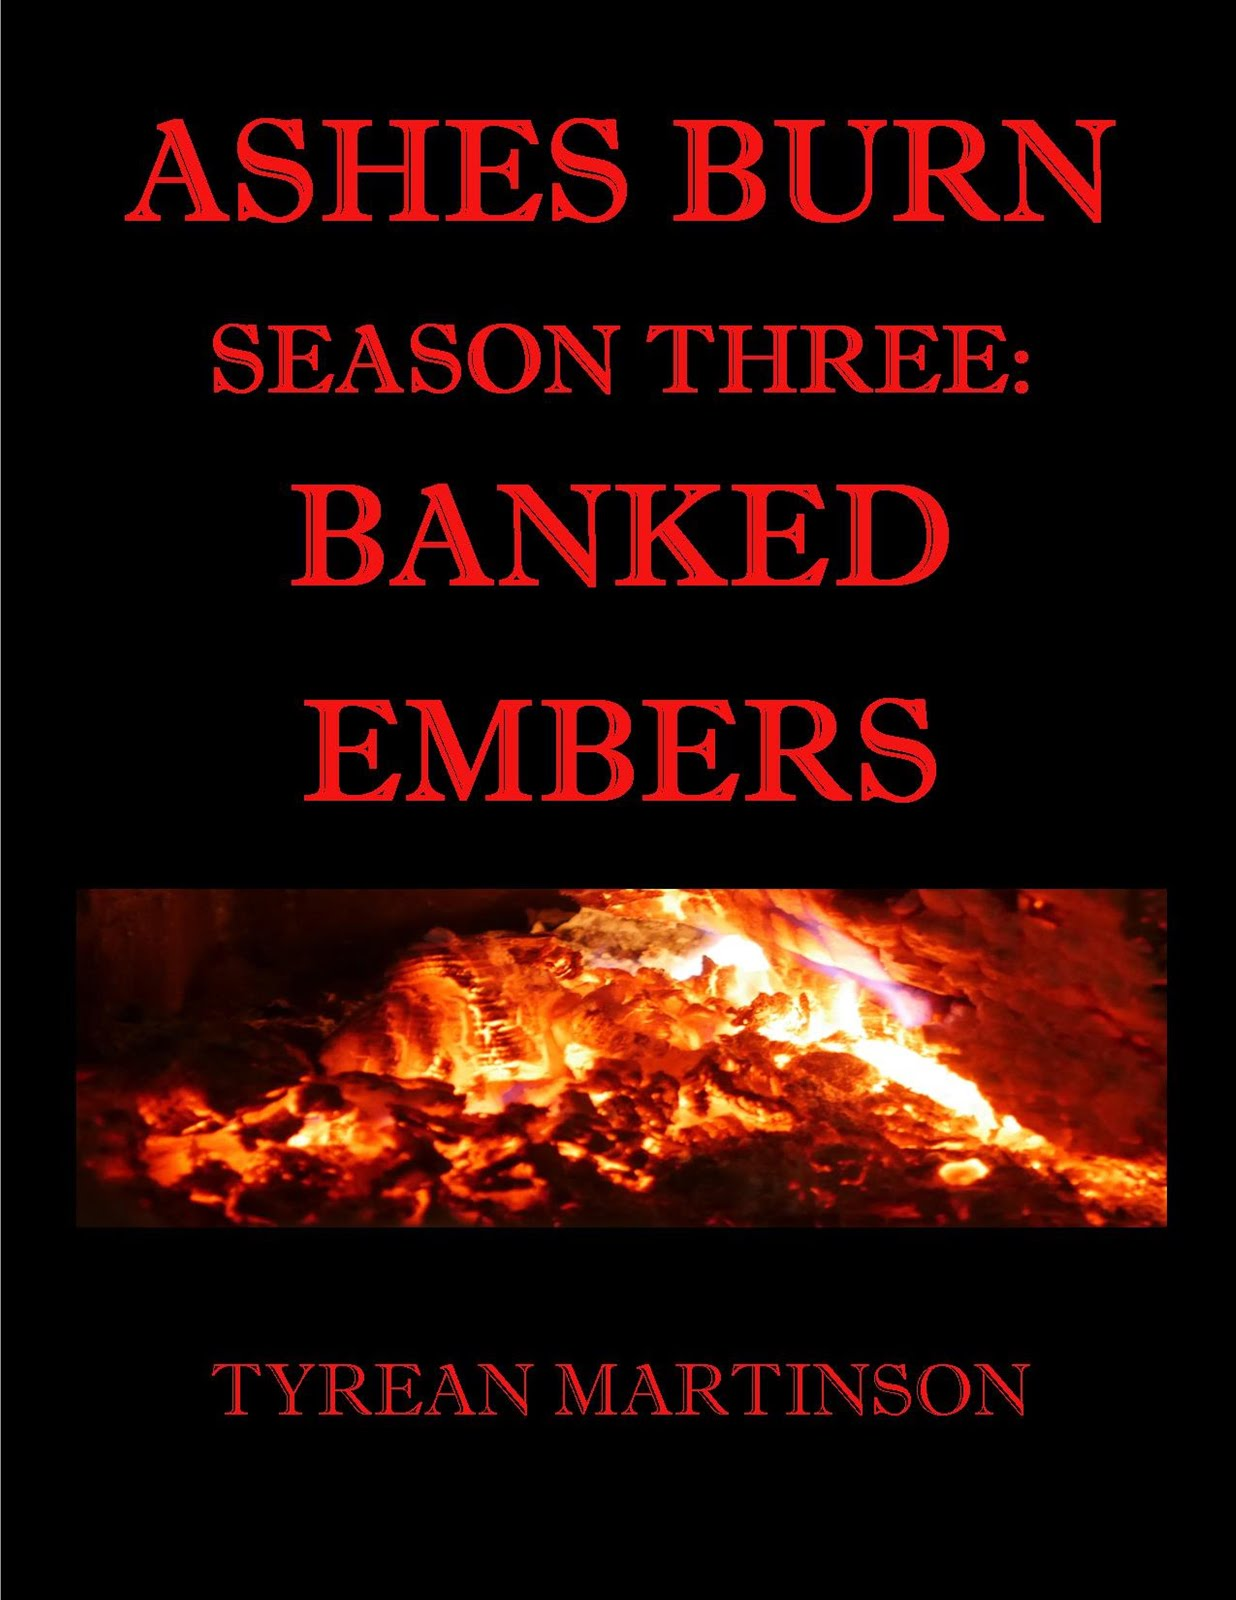 Ashes Burn Season 3: Banked Embers